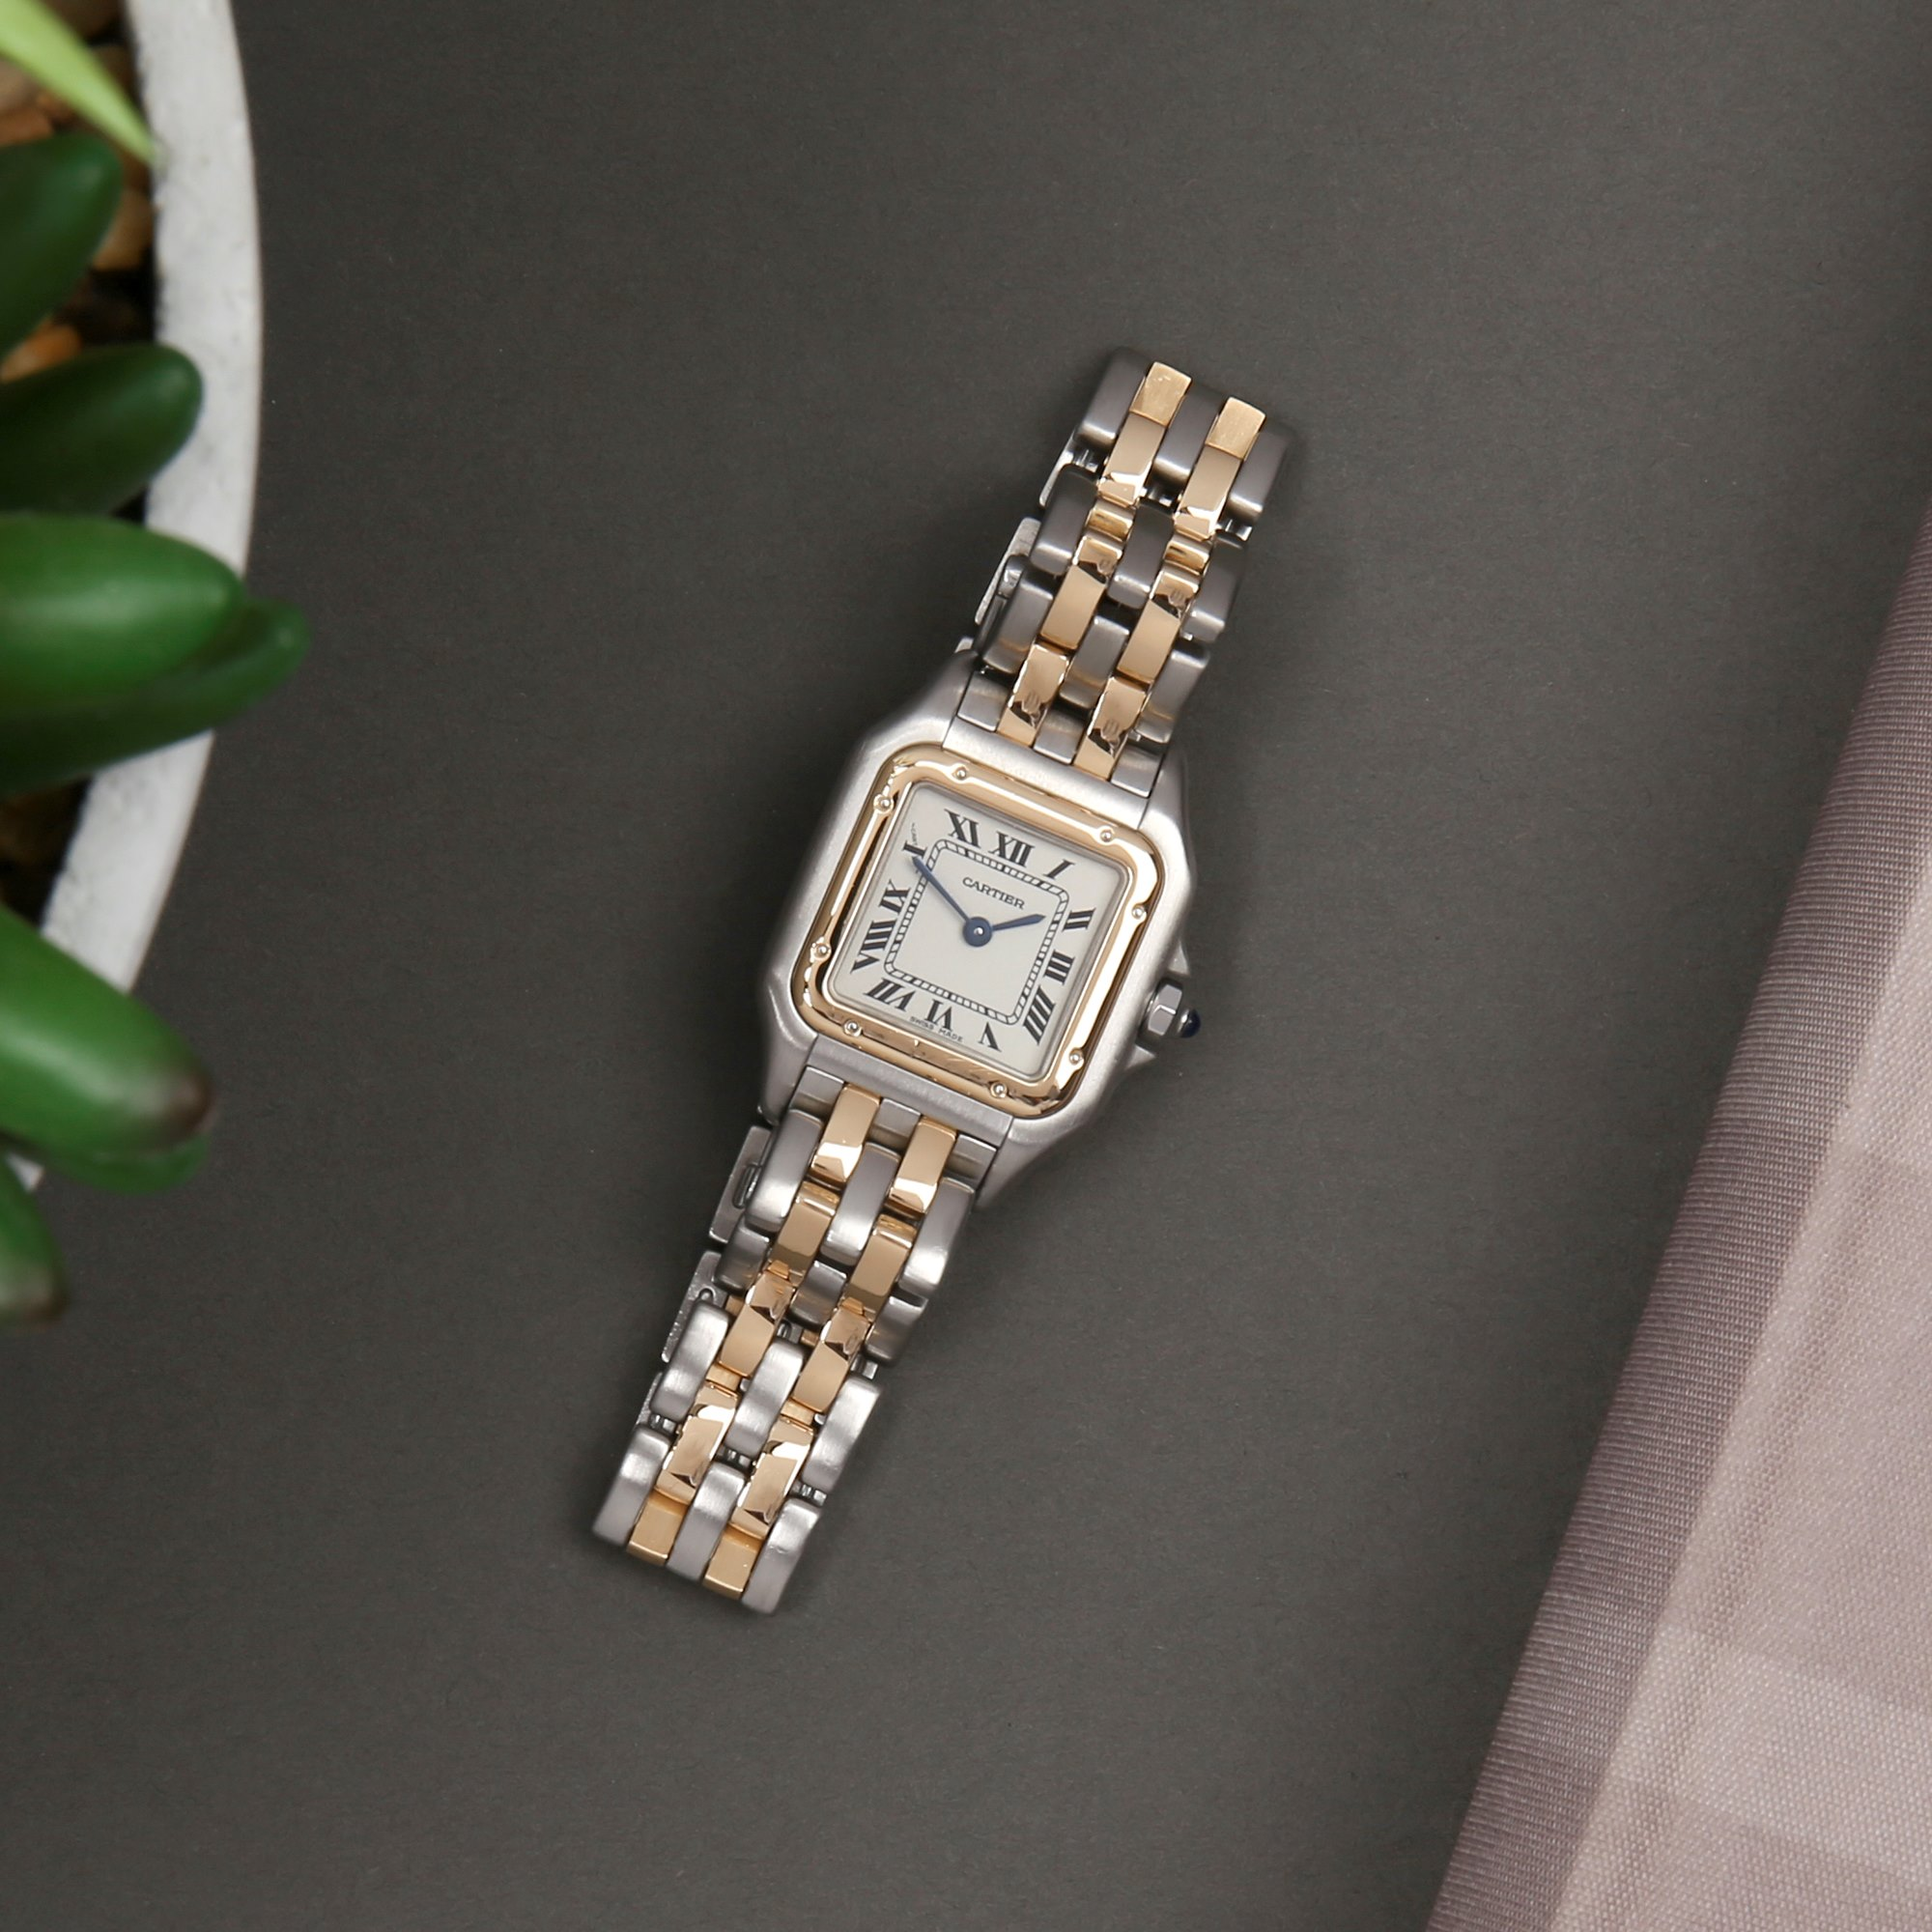 Cartier Panthère 18K Yellow Gold & Stainless Steel 84083241 or 1120